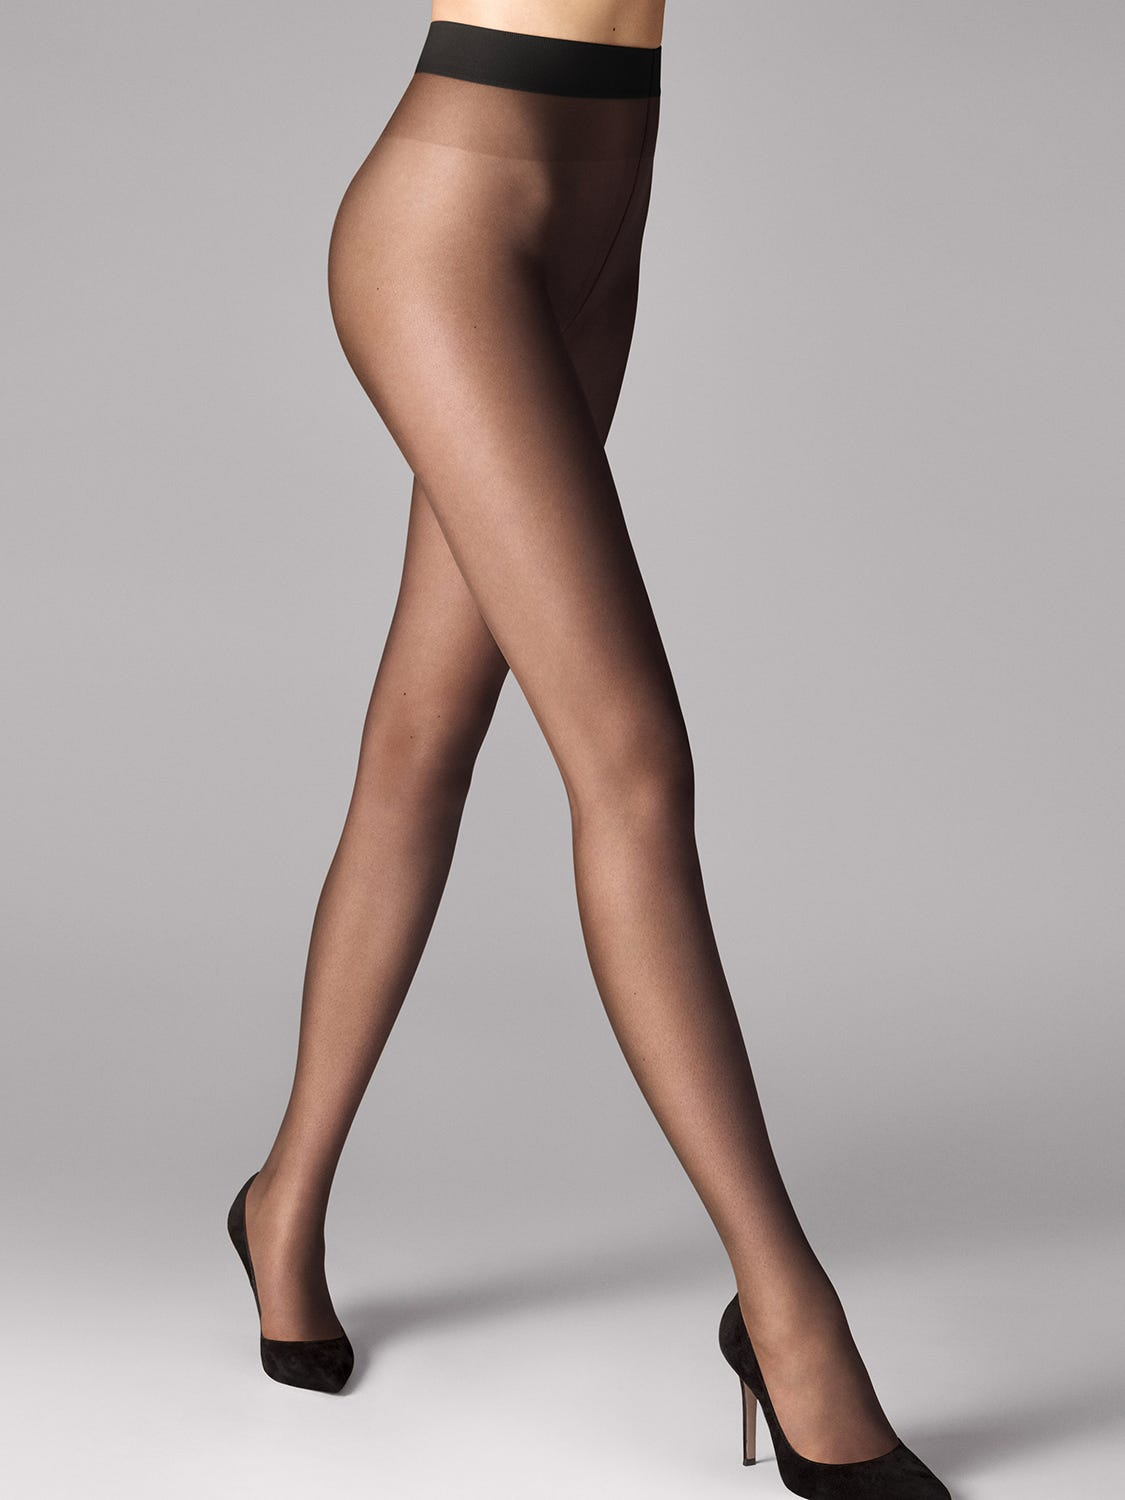 3651b86dea0 ... Wolford Nude 8 Tights. 9085 00008. Please click to zoom-in